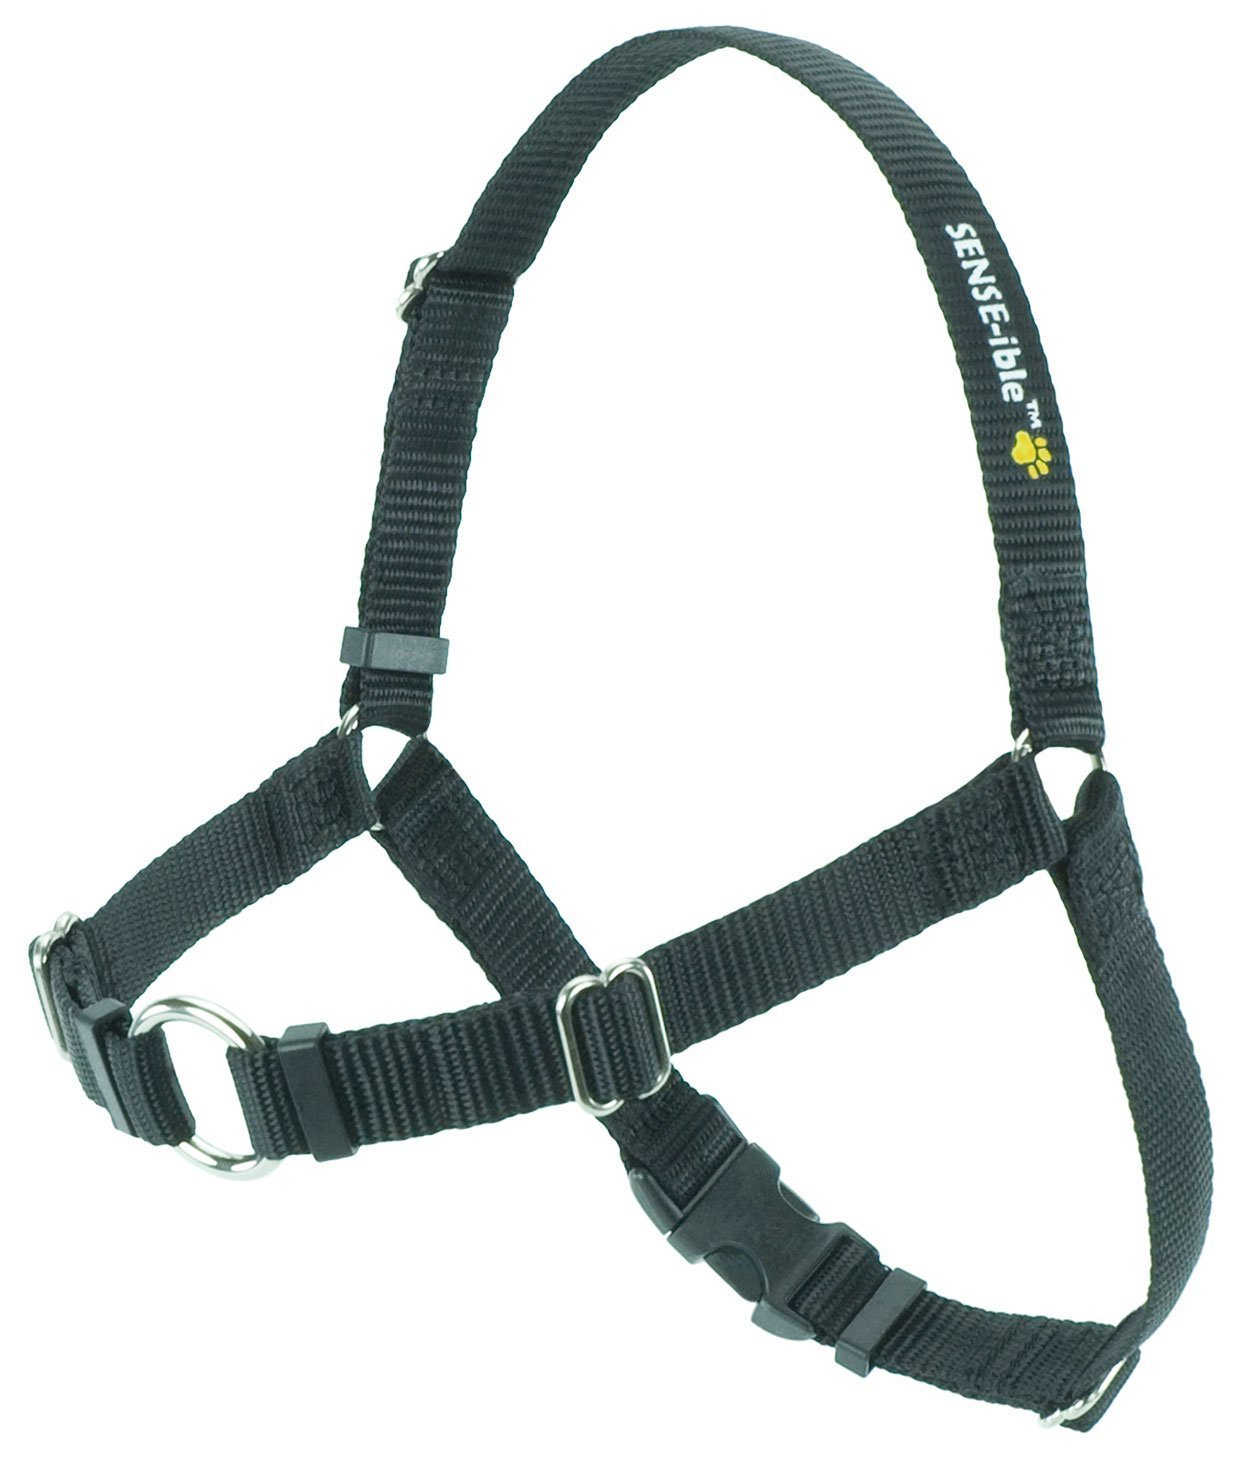 Softouch Sense-ible No-Pull Dog Harness - Black Medium